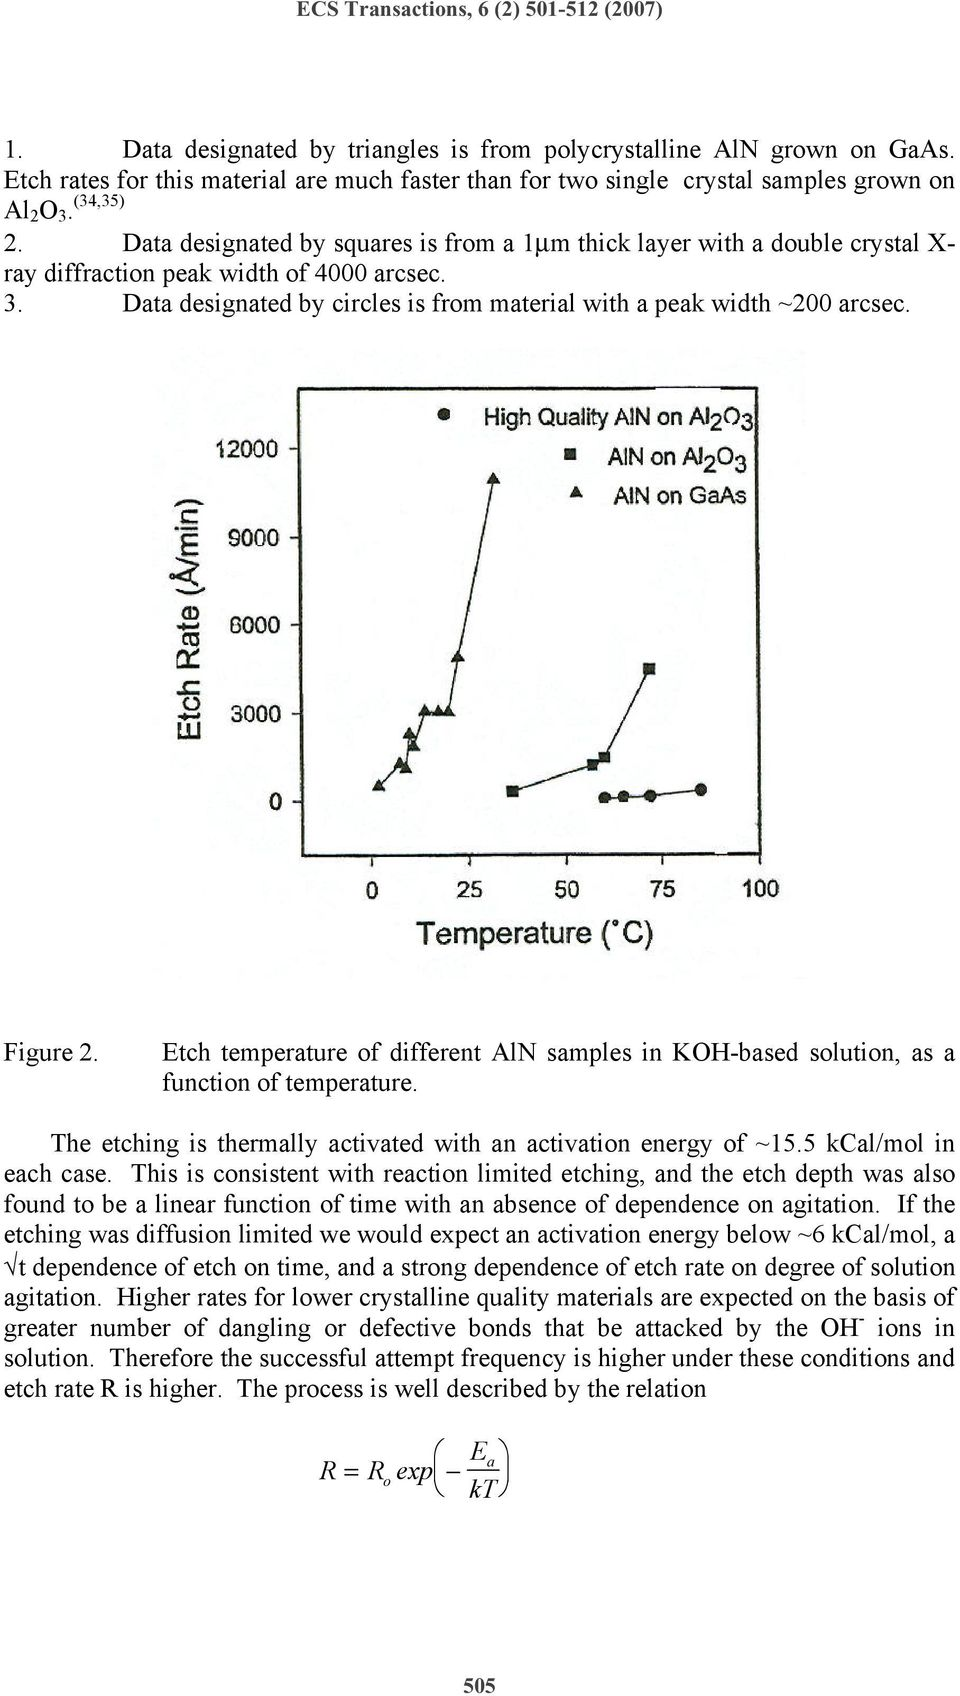 Figure 2. Etch temperature of different AlN samples in KOH-based solution, as a function of temperature. The etching is thermally activated with an activation energy of ~15.5 kcal/mol in each case.